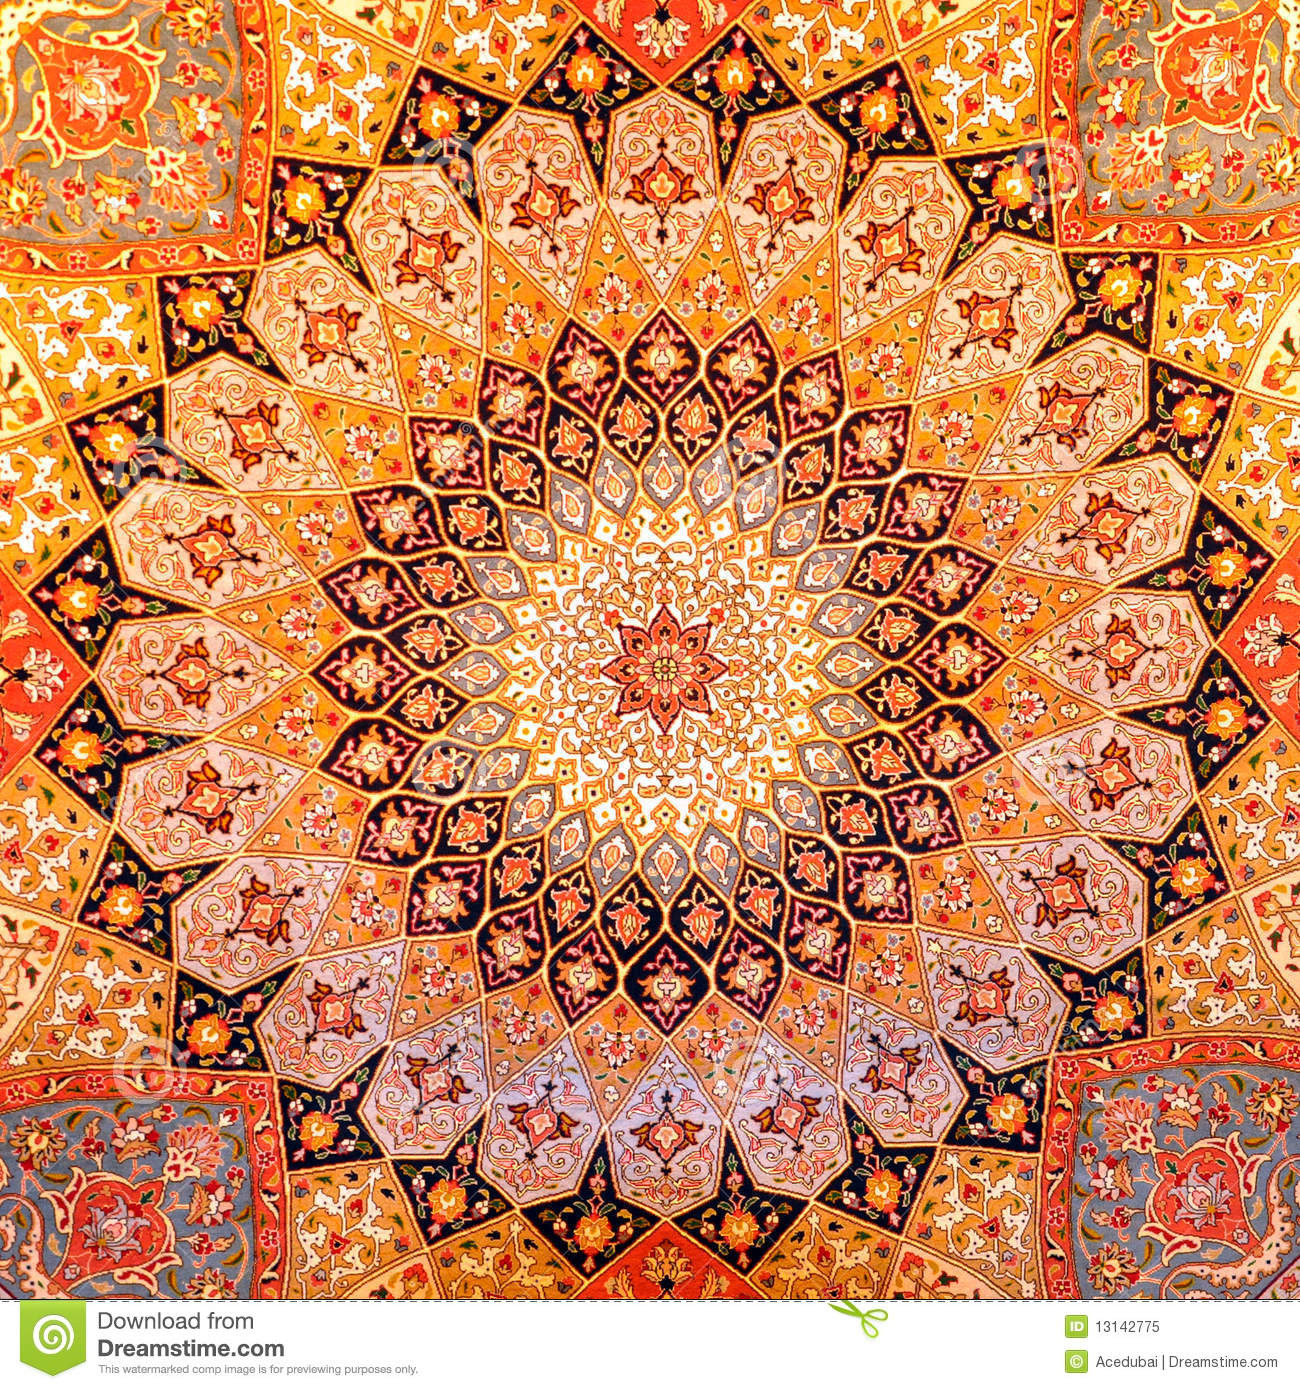 Persian carpet design royalty free stock photo image 13142775 - Photo image design ...